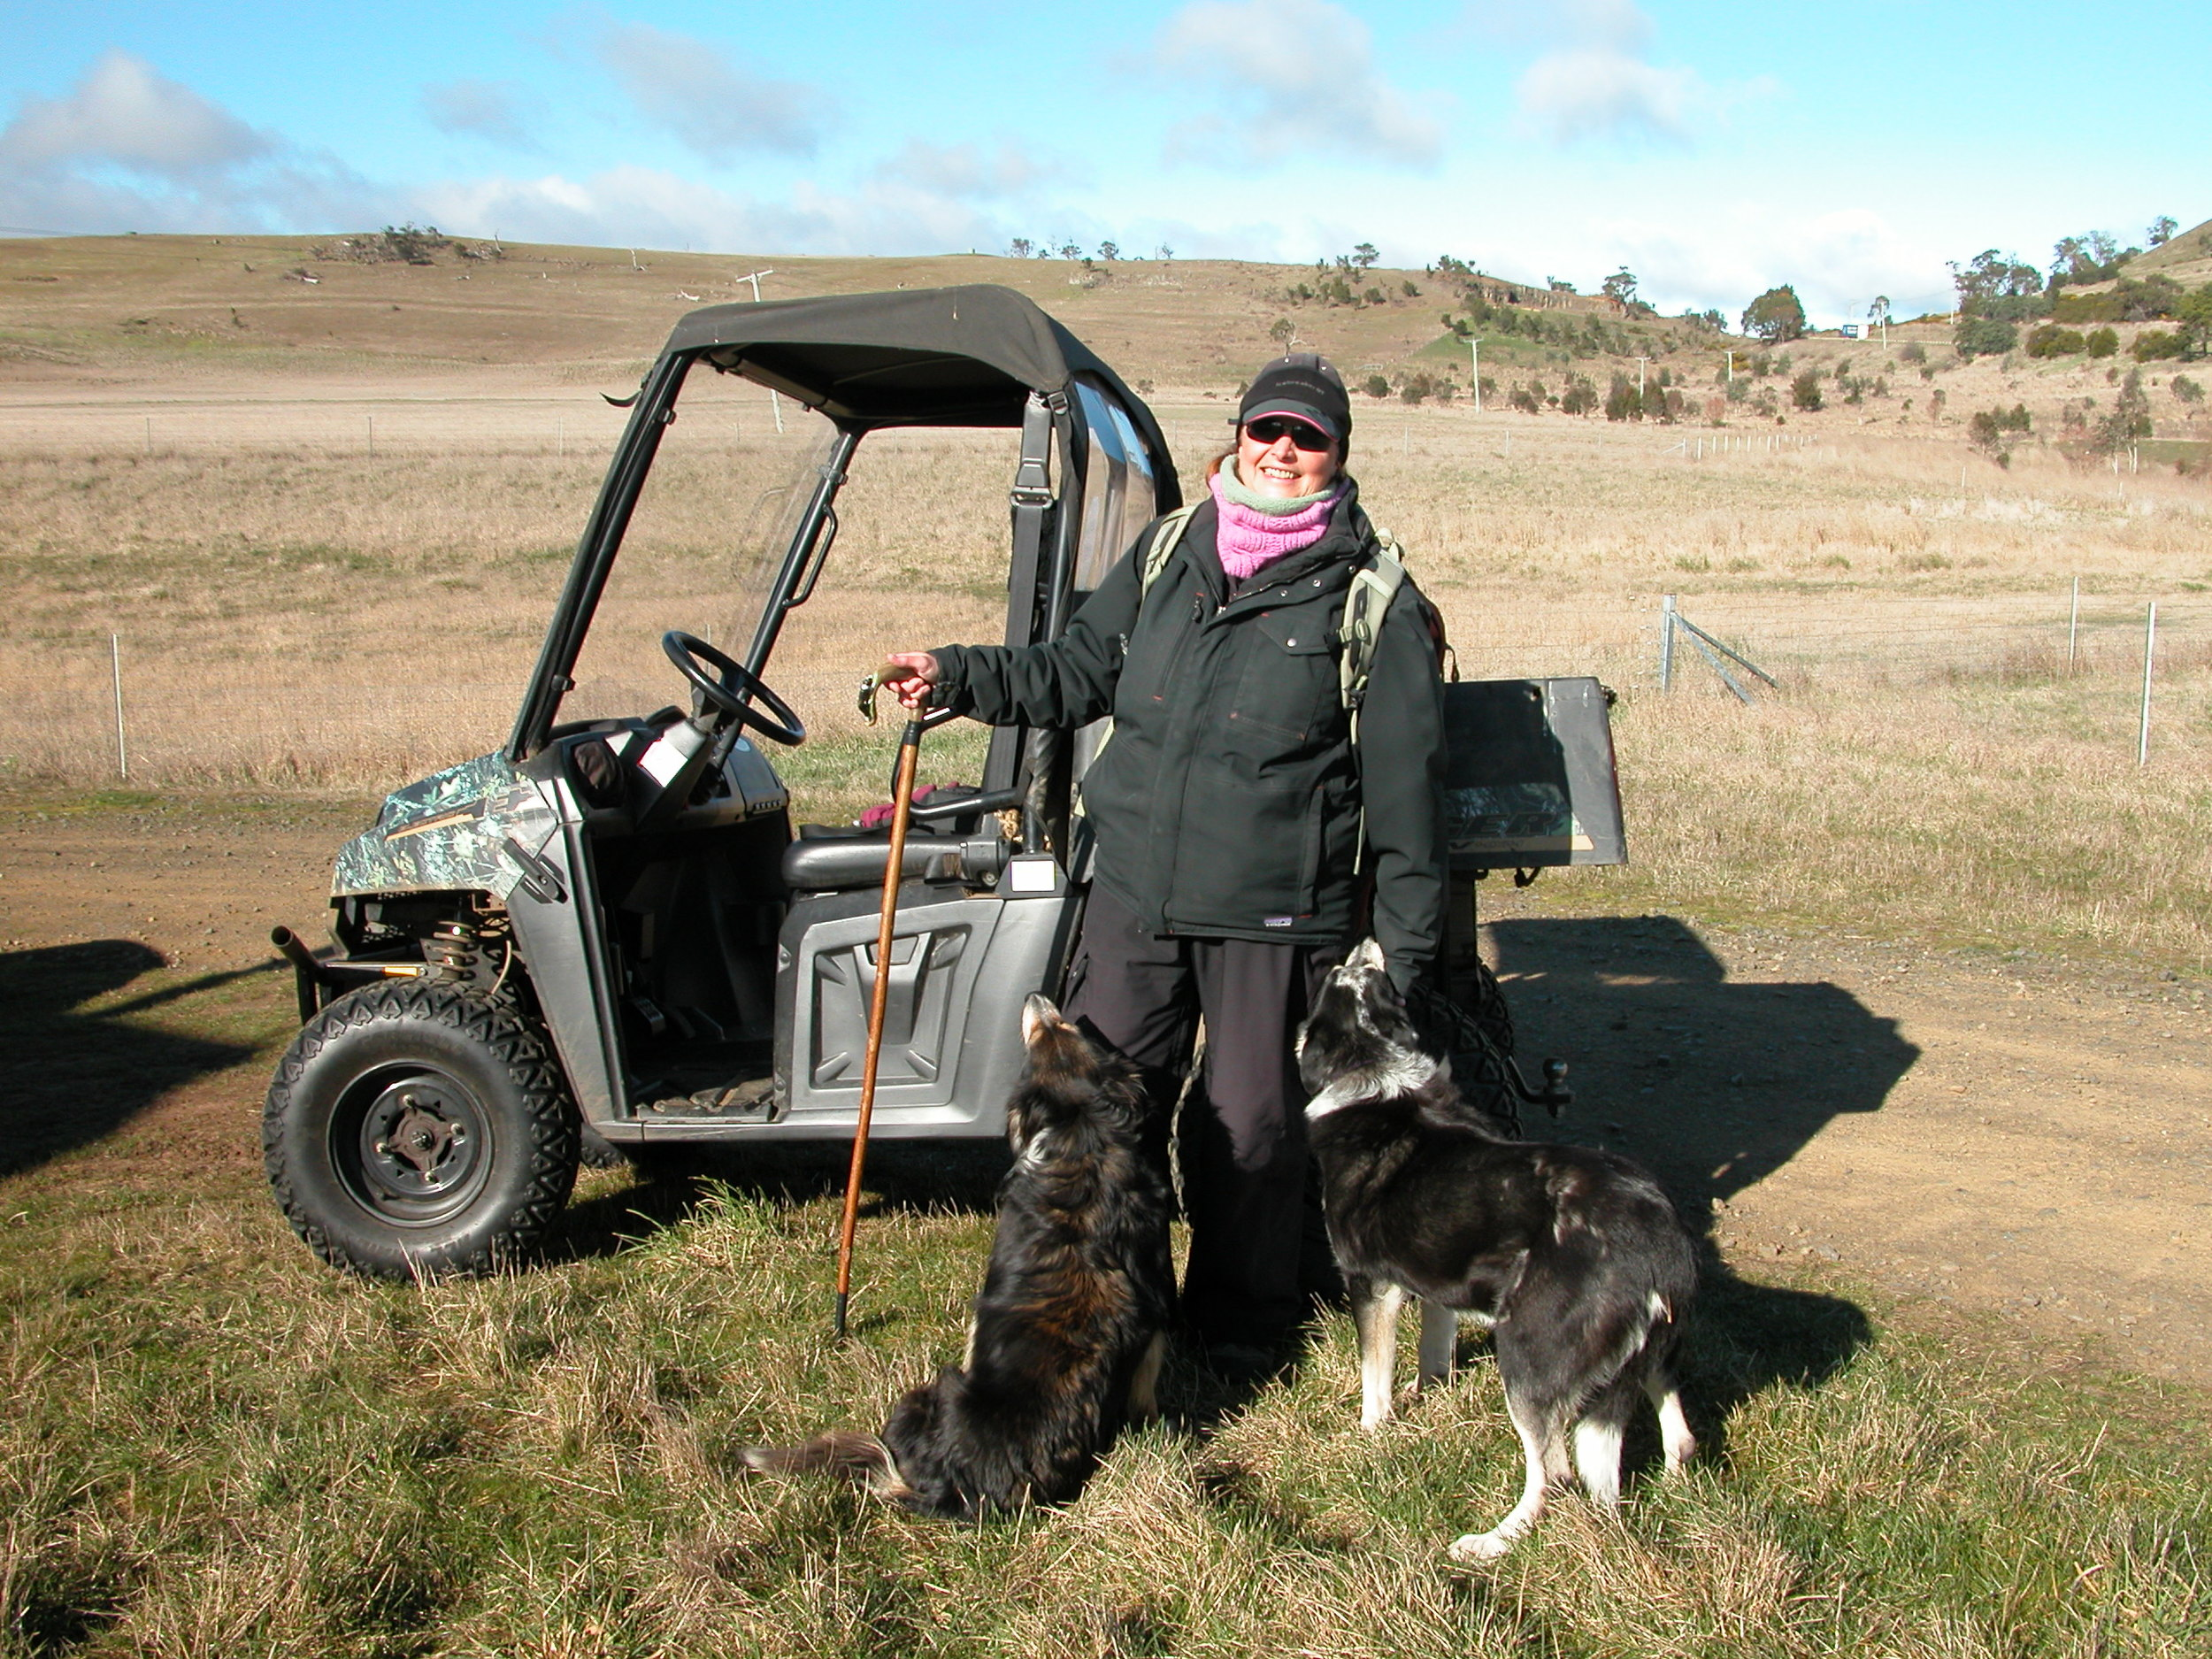 Heading out with Janie and Chance. The Polaris is just to get me up the hill–from there it's all on foot.